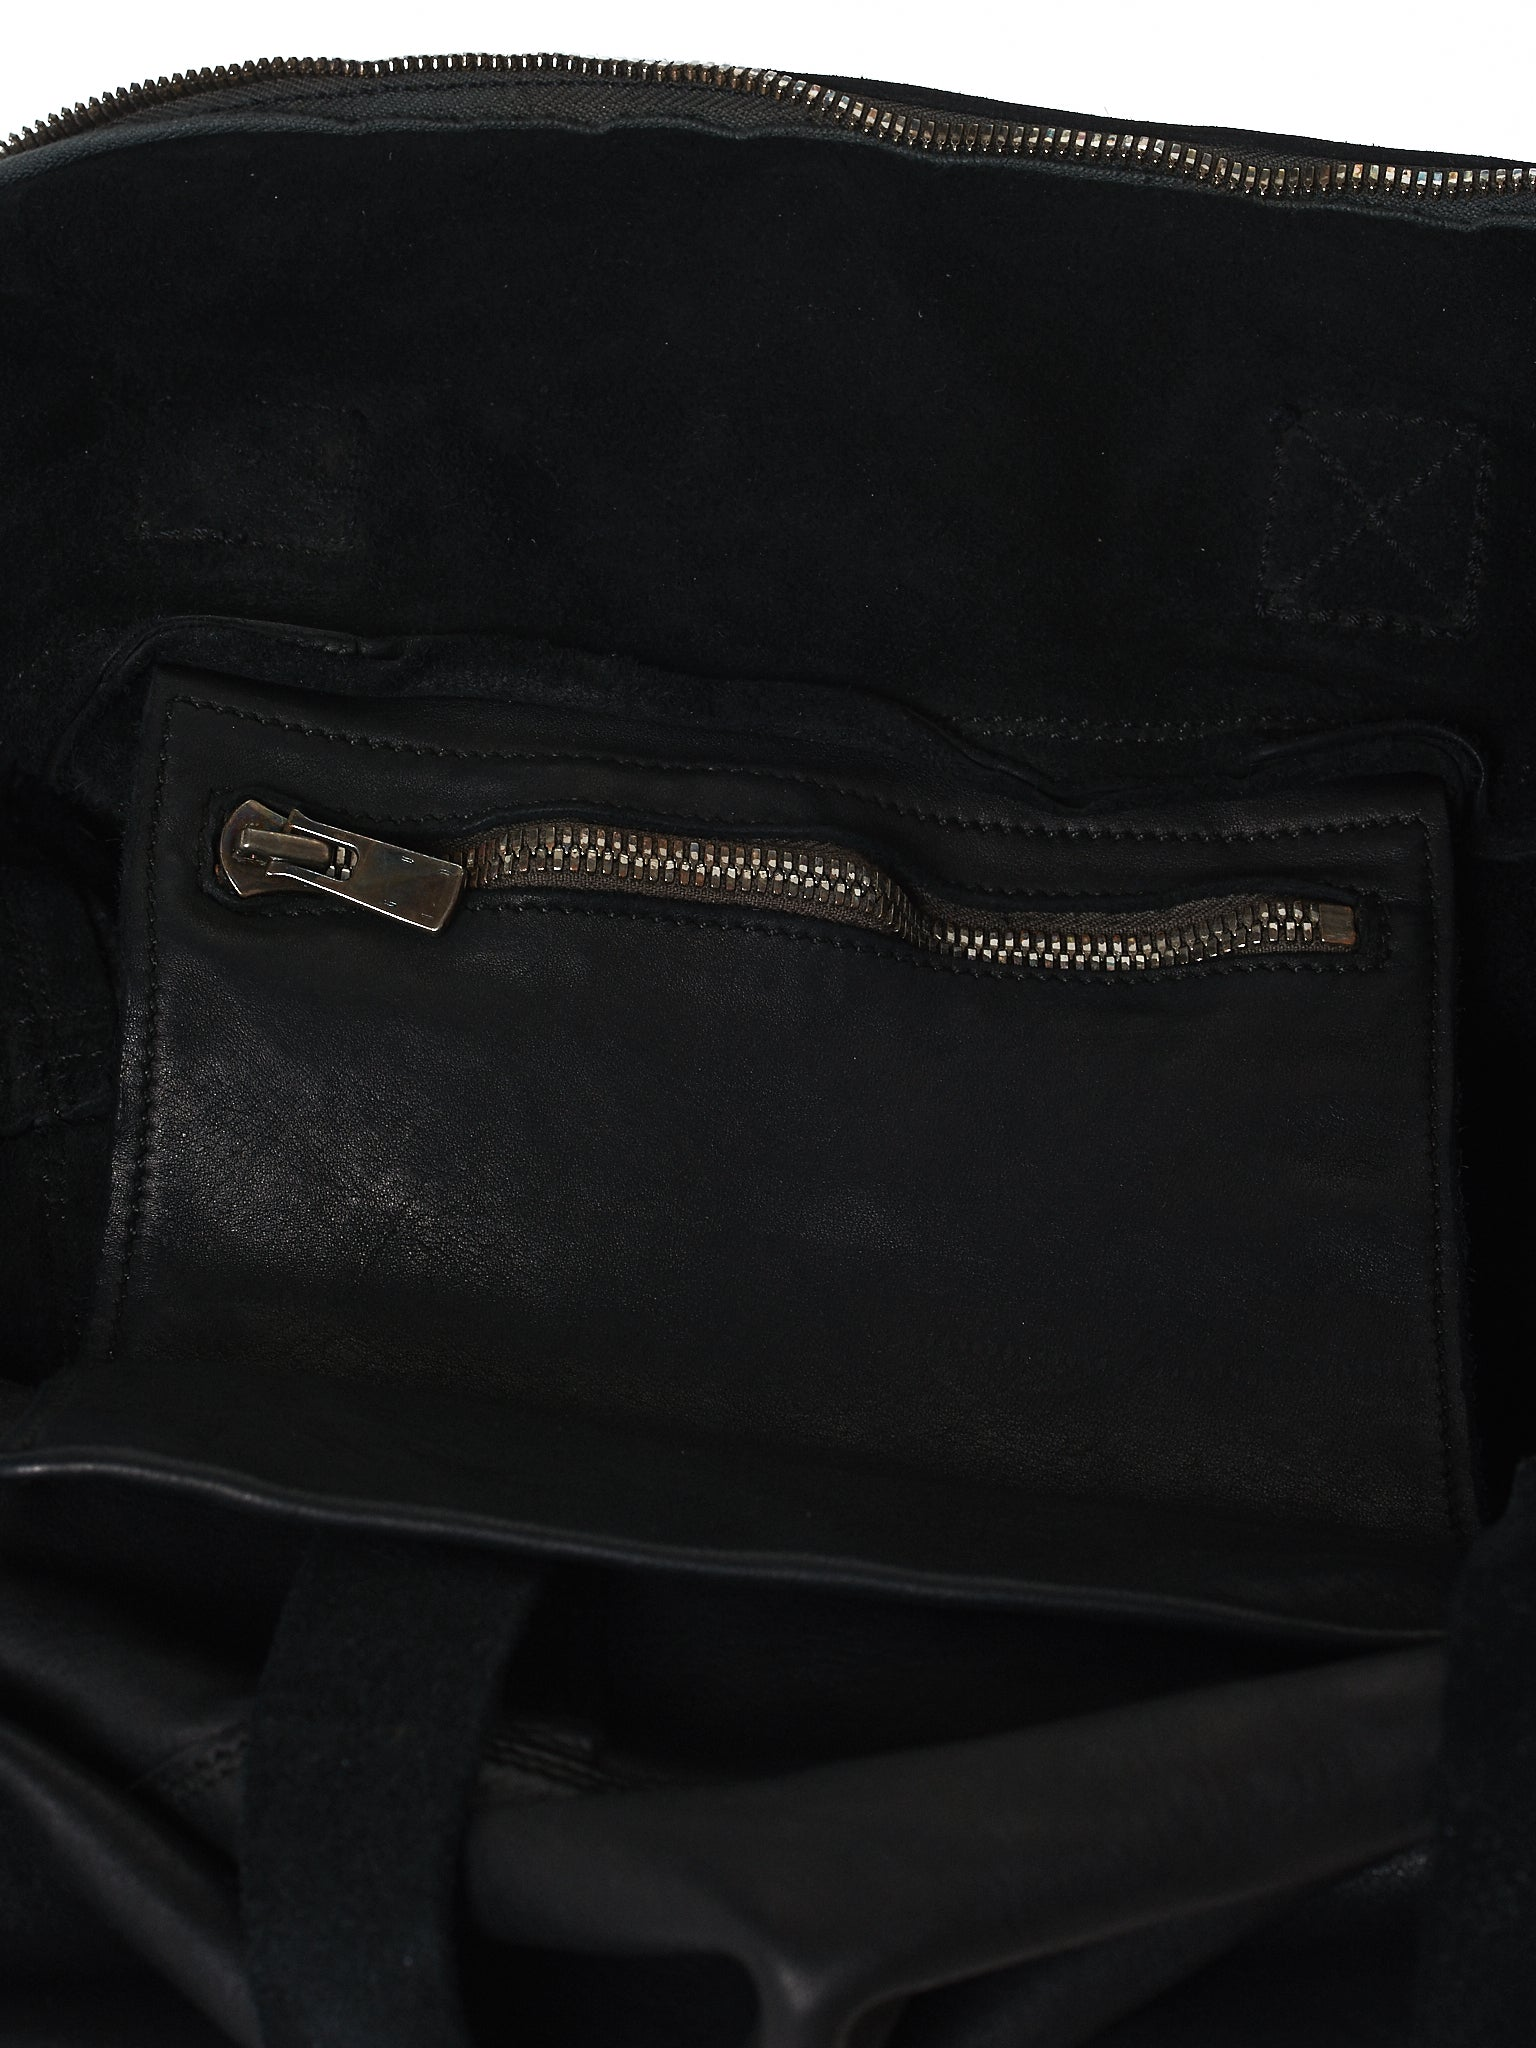 Leather Bag (T25-SOFT-HORSE-FG-BLKT)